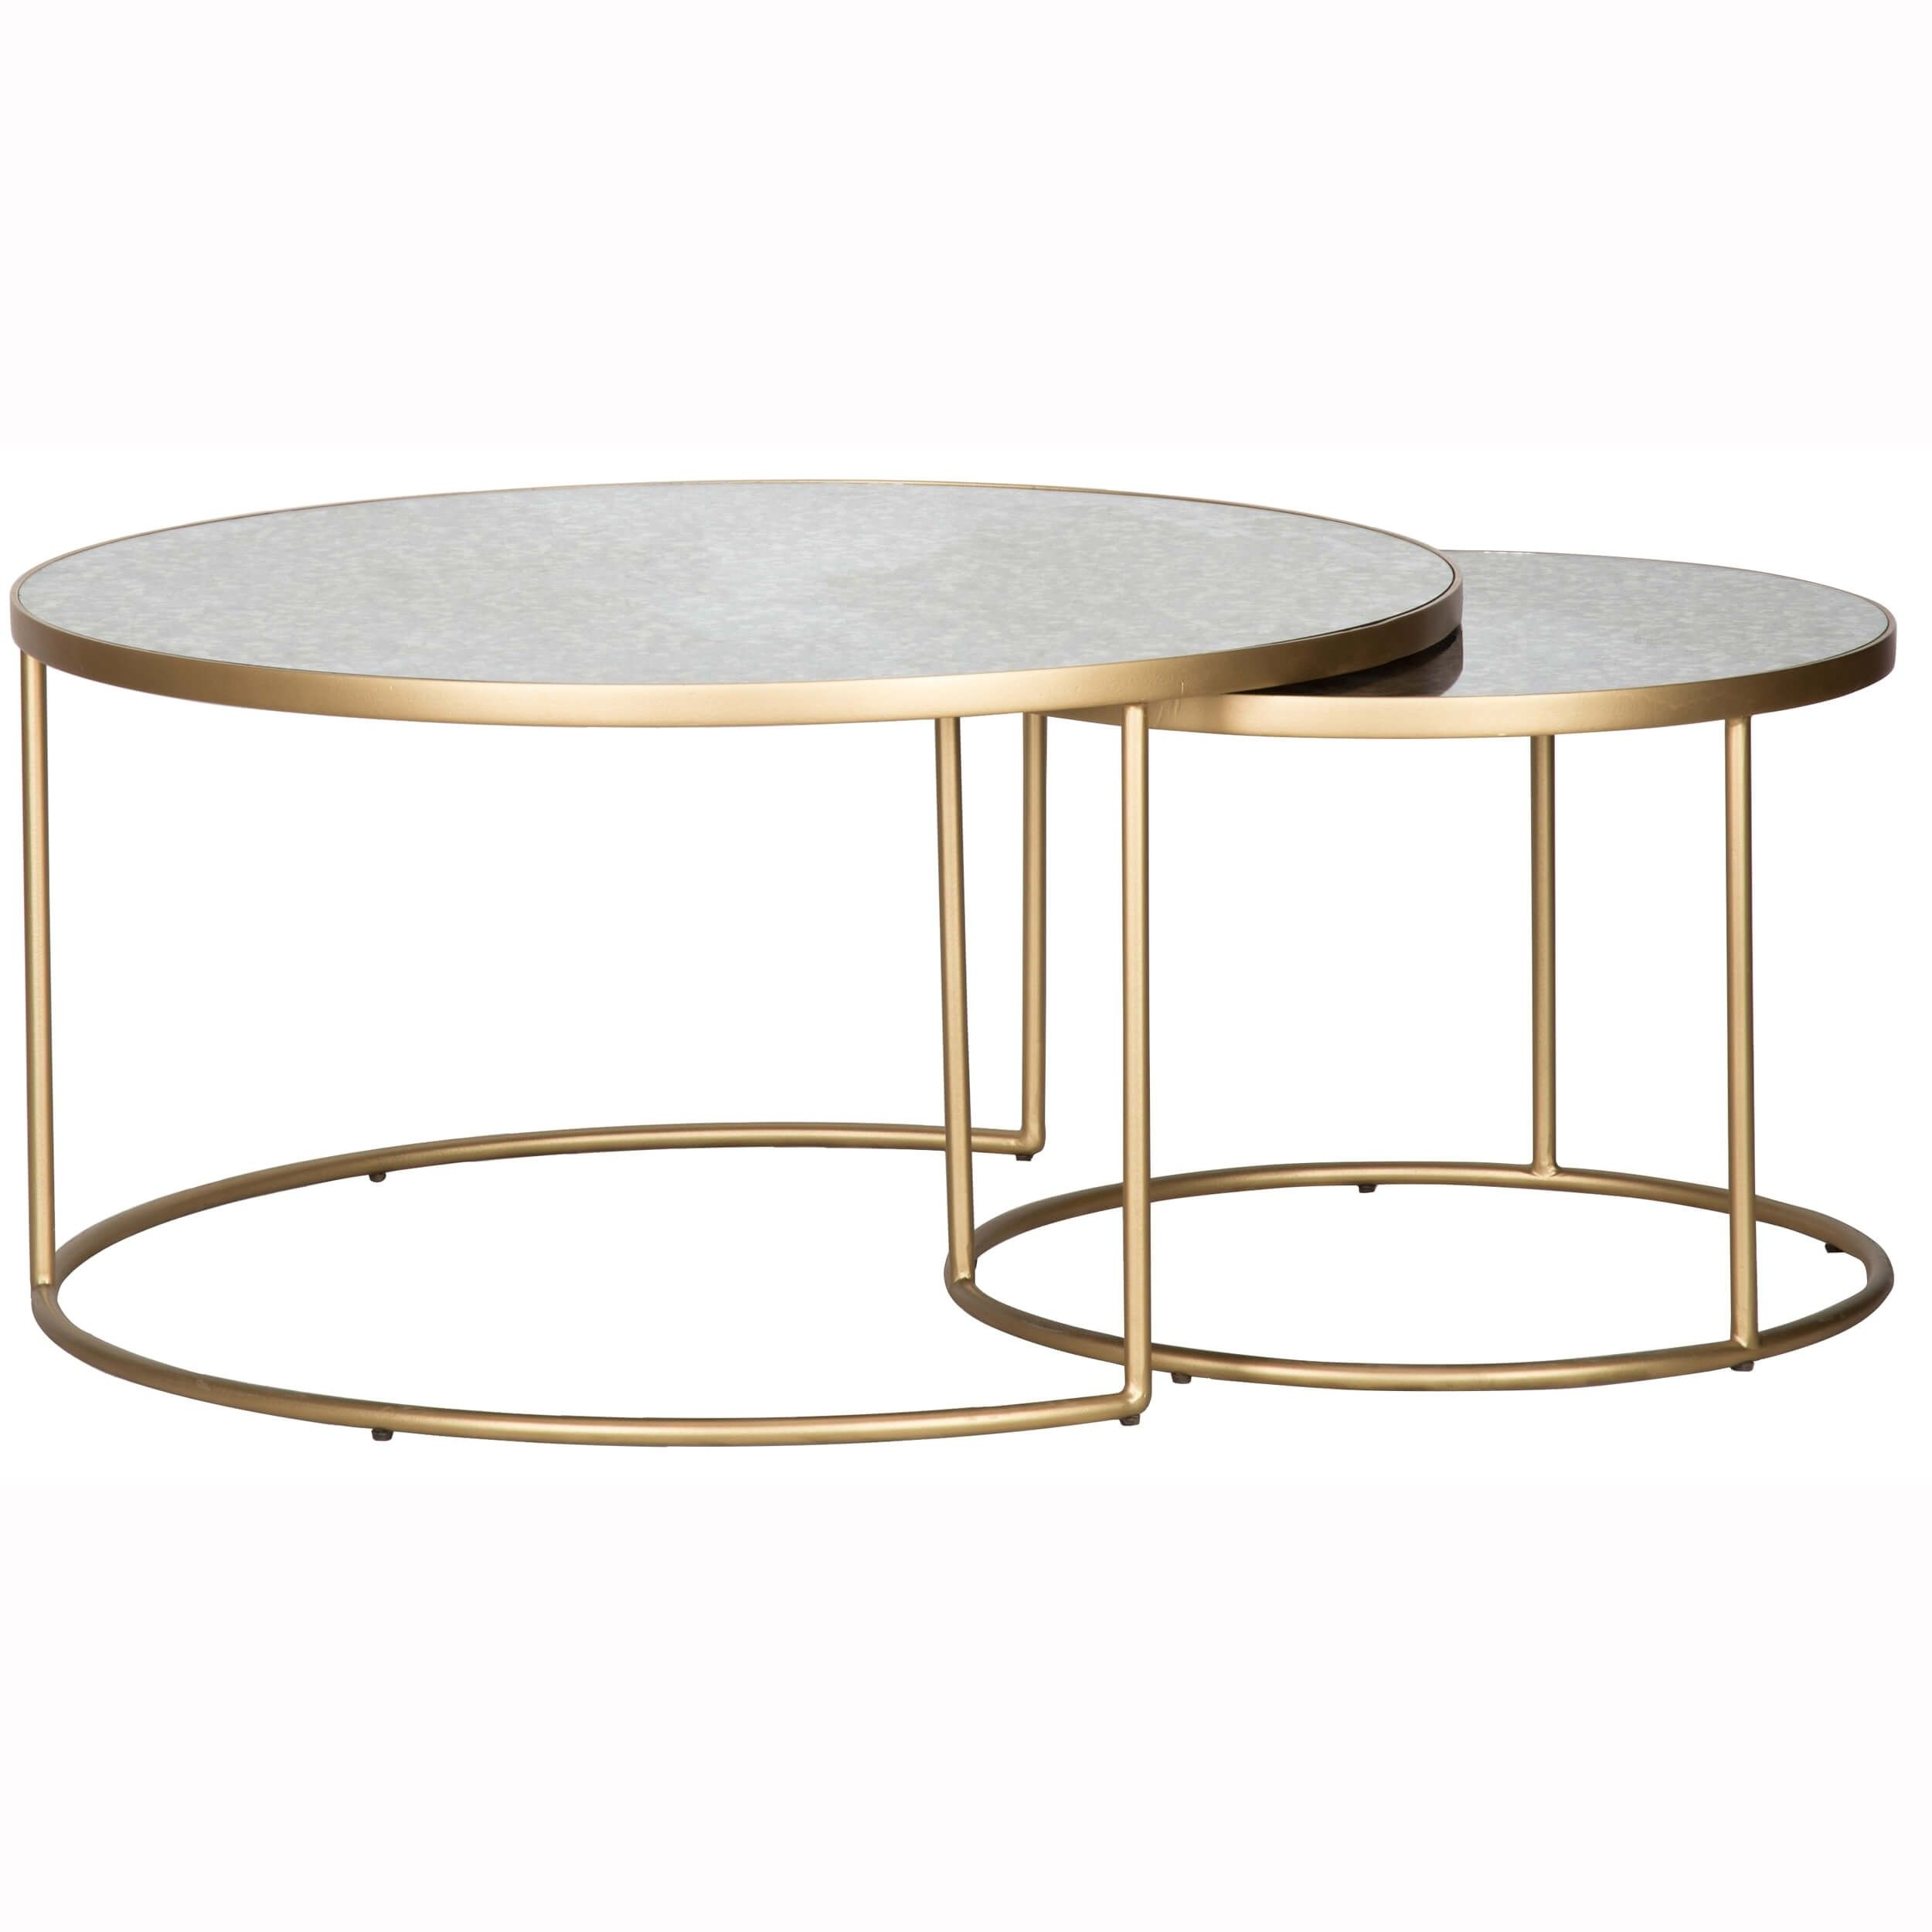 Solis Nesting Coffee Table Coffee Table Living Room Decor Neutral Nesting Coffee Tables [ 2500 x 2500 Pixel ]